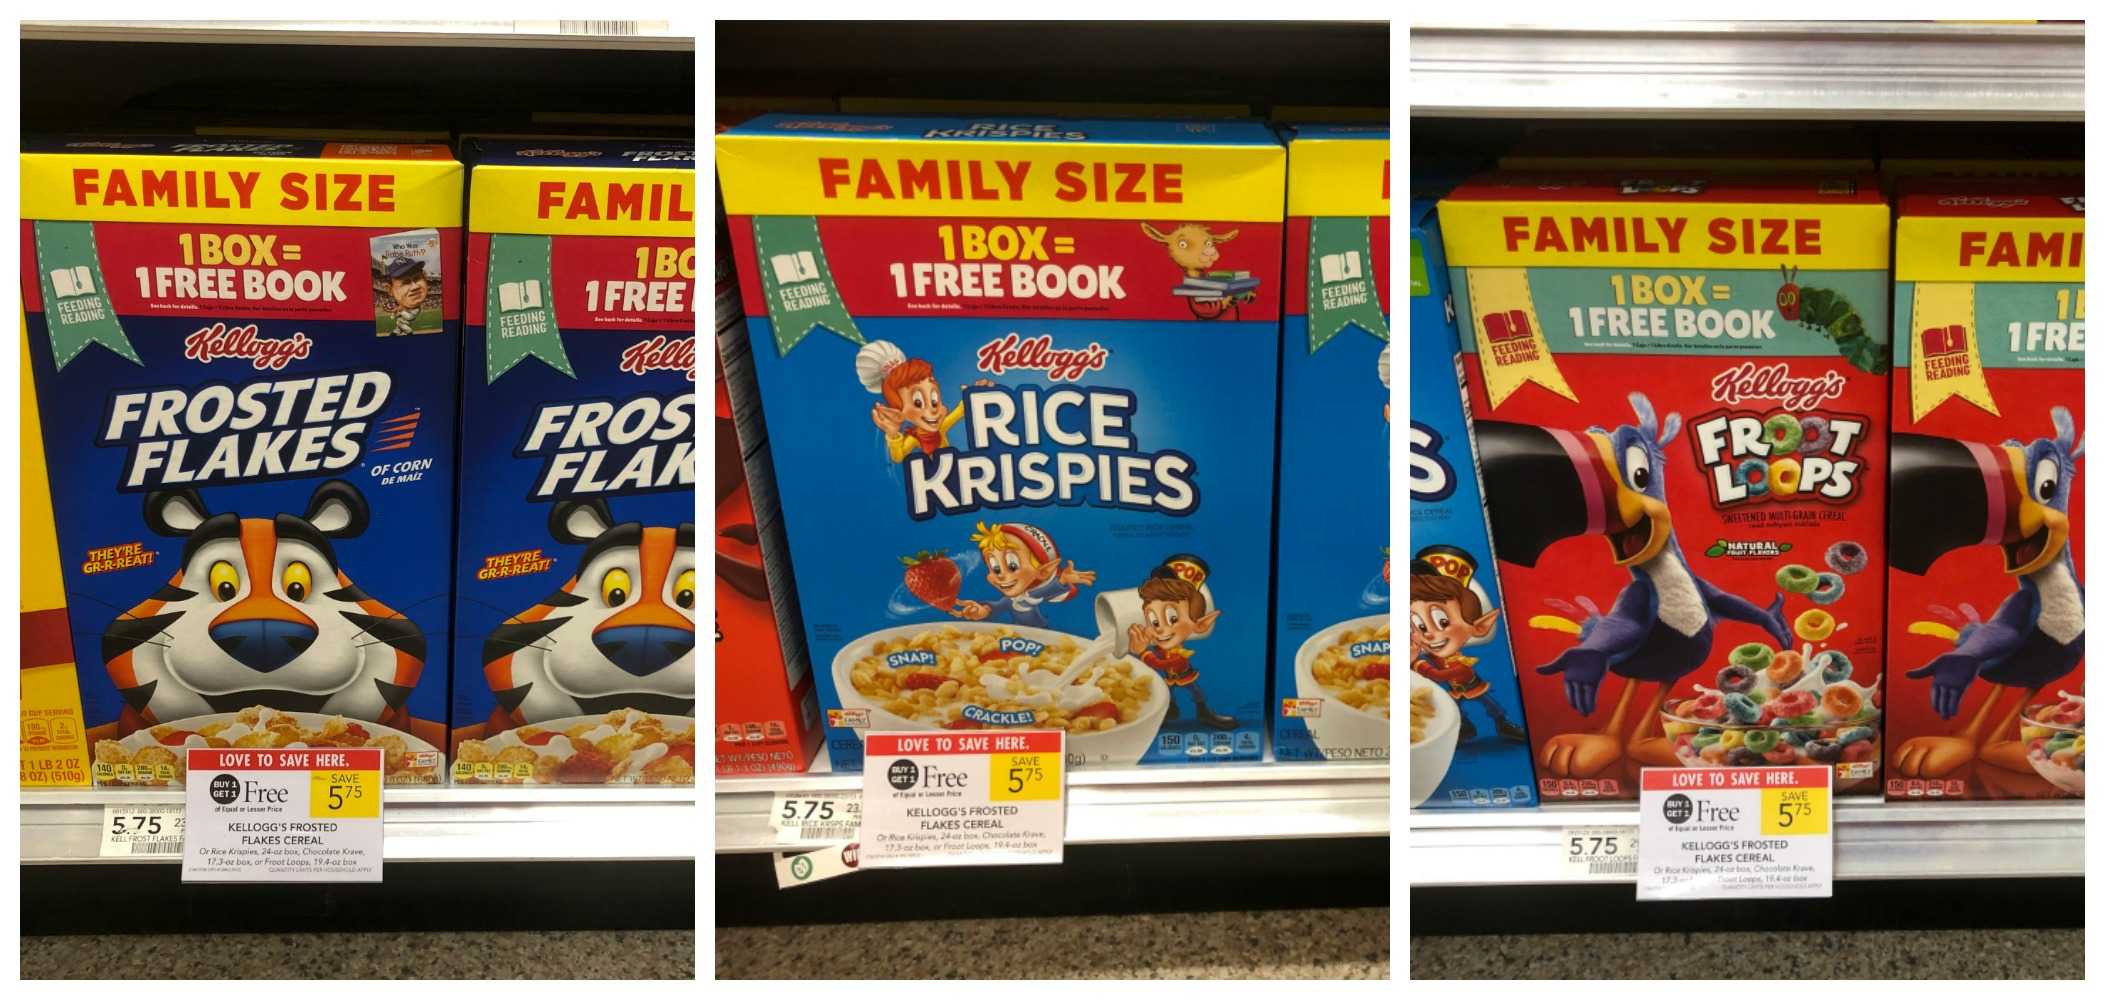 Get A Great Deal On Delicious Kellogg's Cereals & Get A Free Book With The Feeding Reading Program! on I Heart Publix